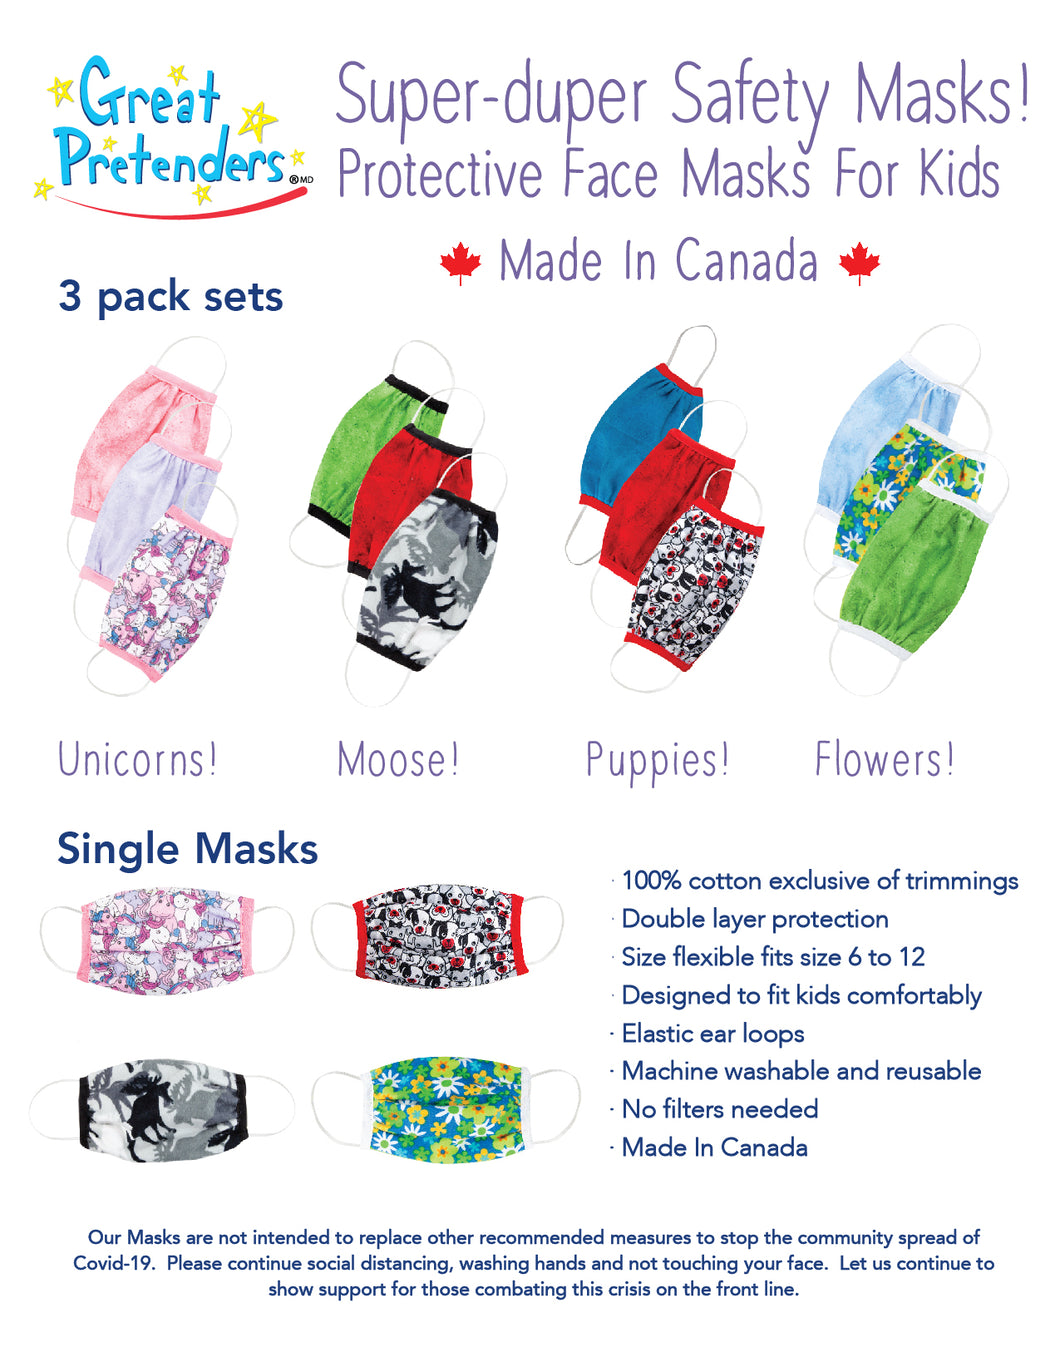 Great Pretenders Children's Fabric Masks